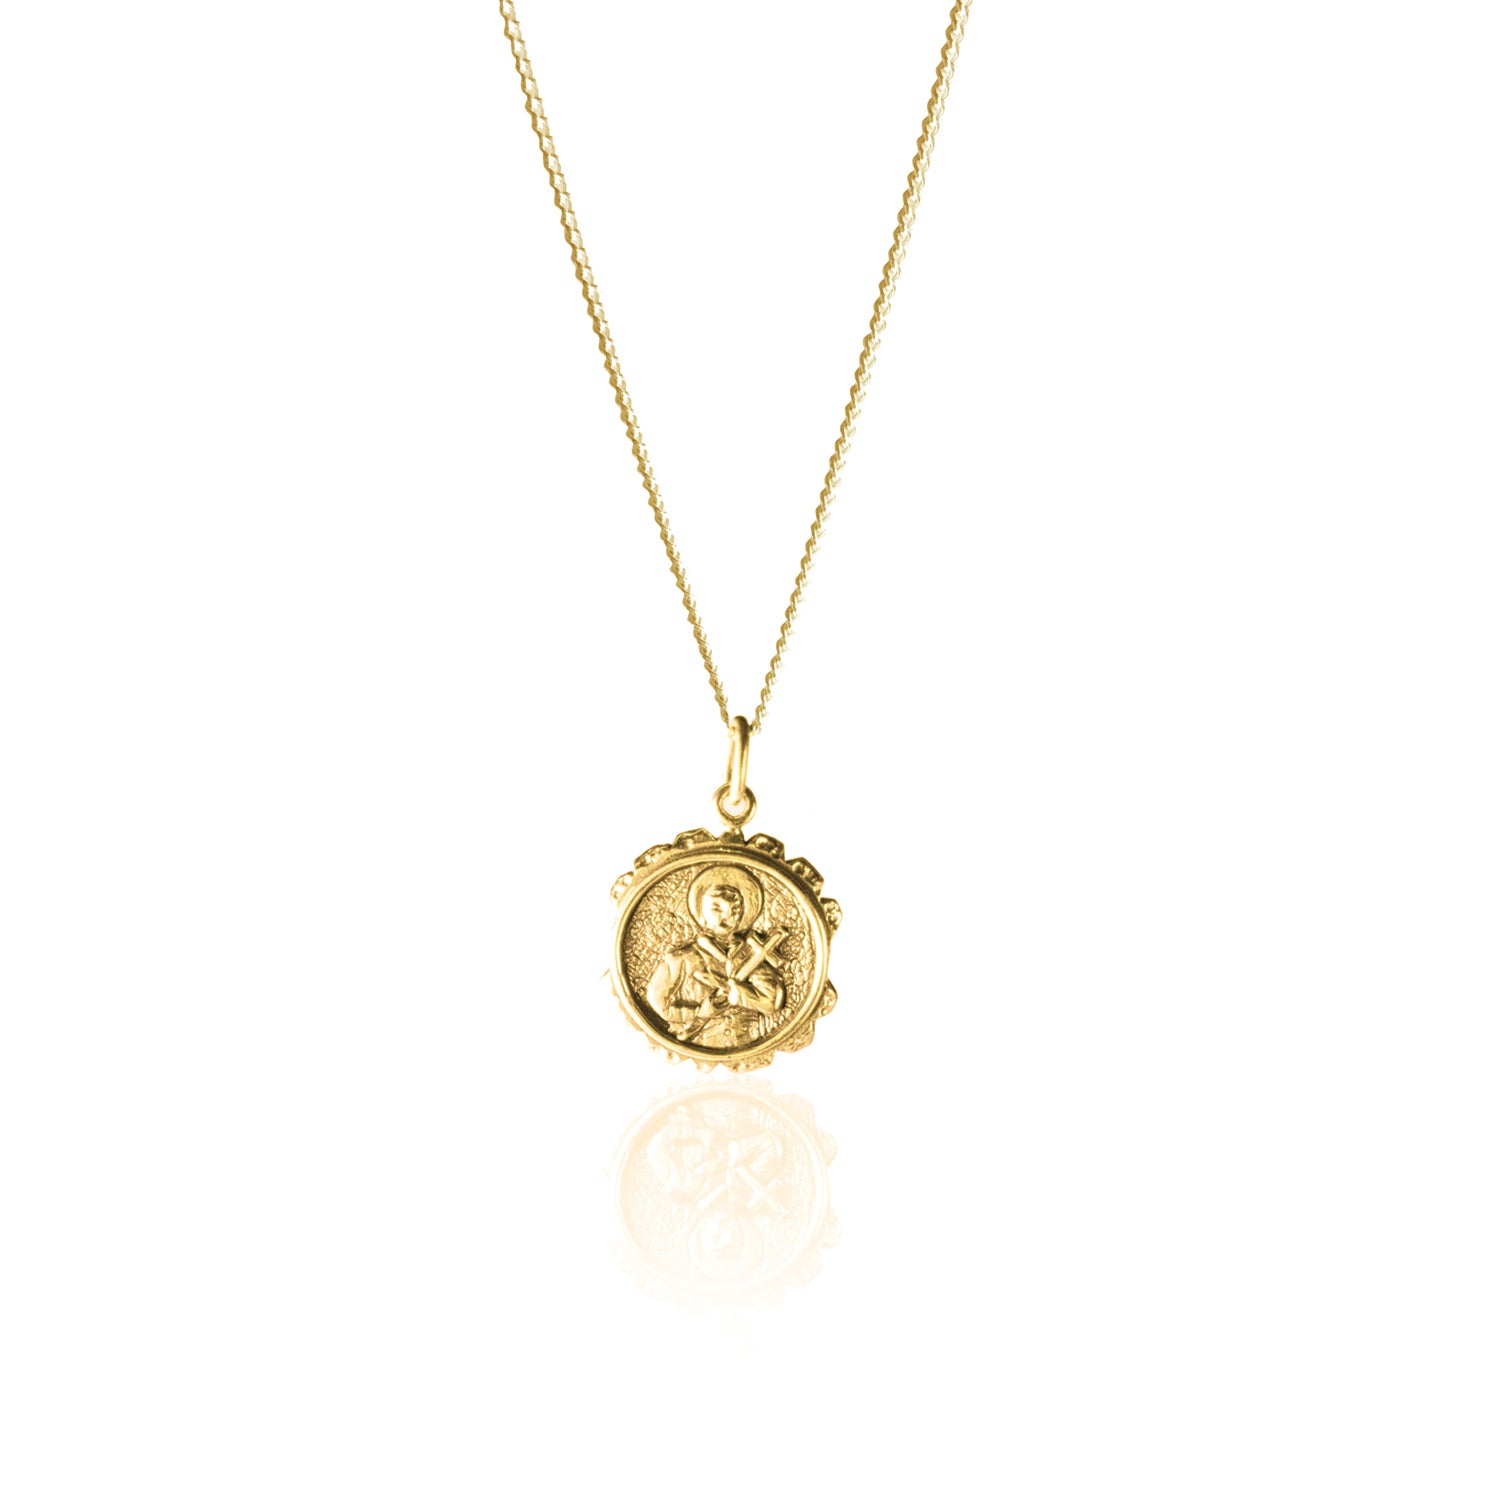 Patron Saint of Motherhood - Gold Round Pendant Necklace by La Luna Rose